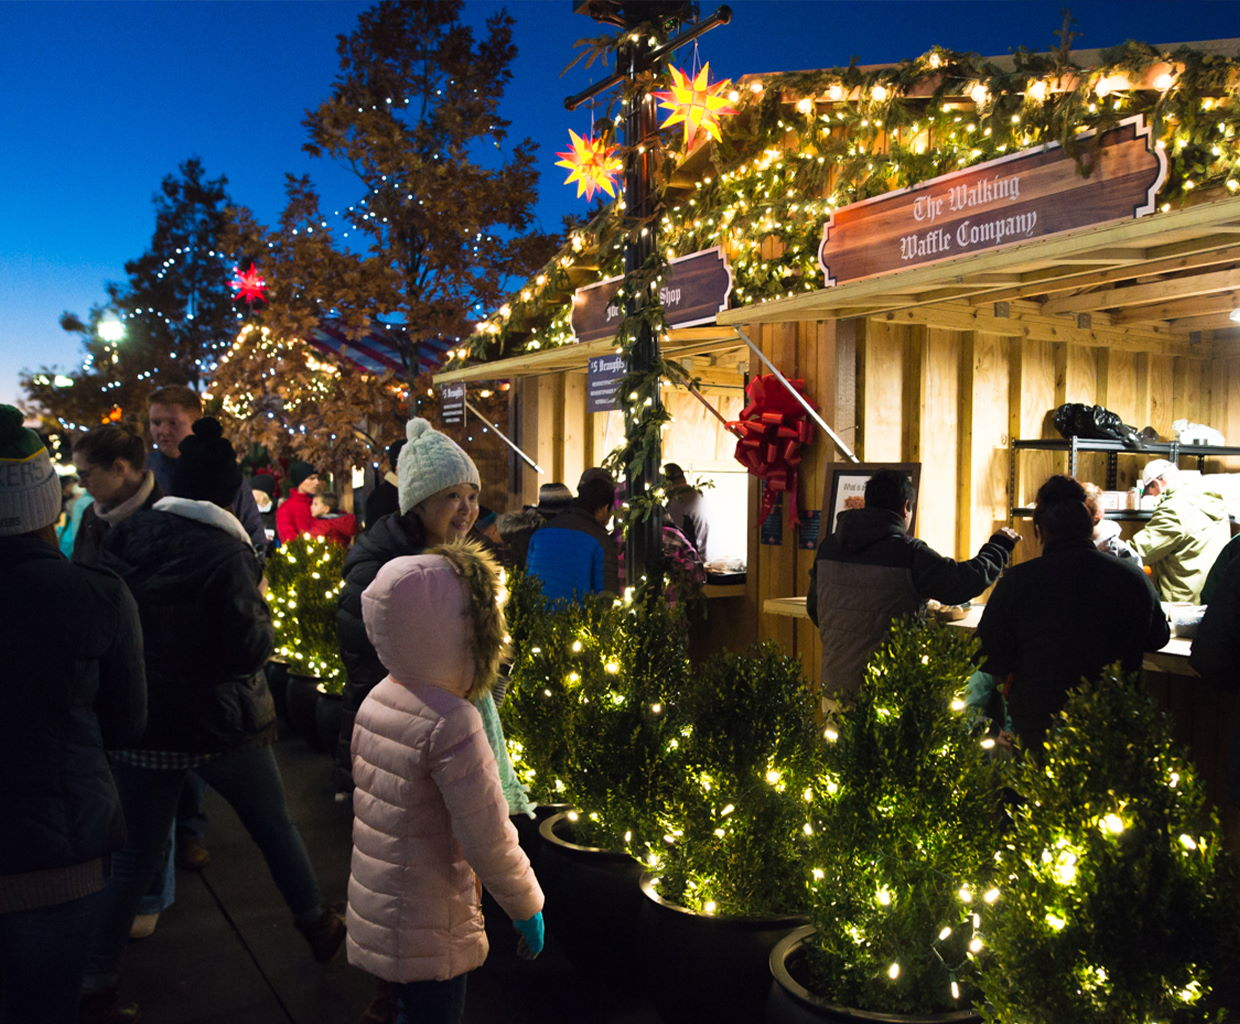 Christkindlmarkt in Carmel